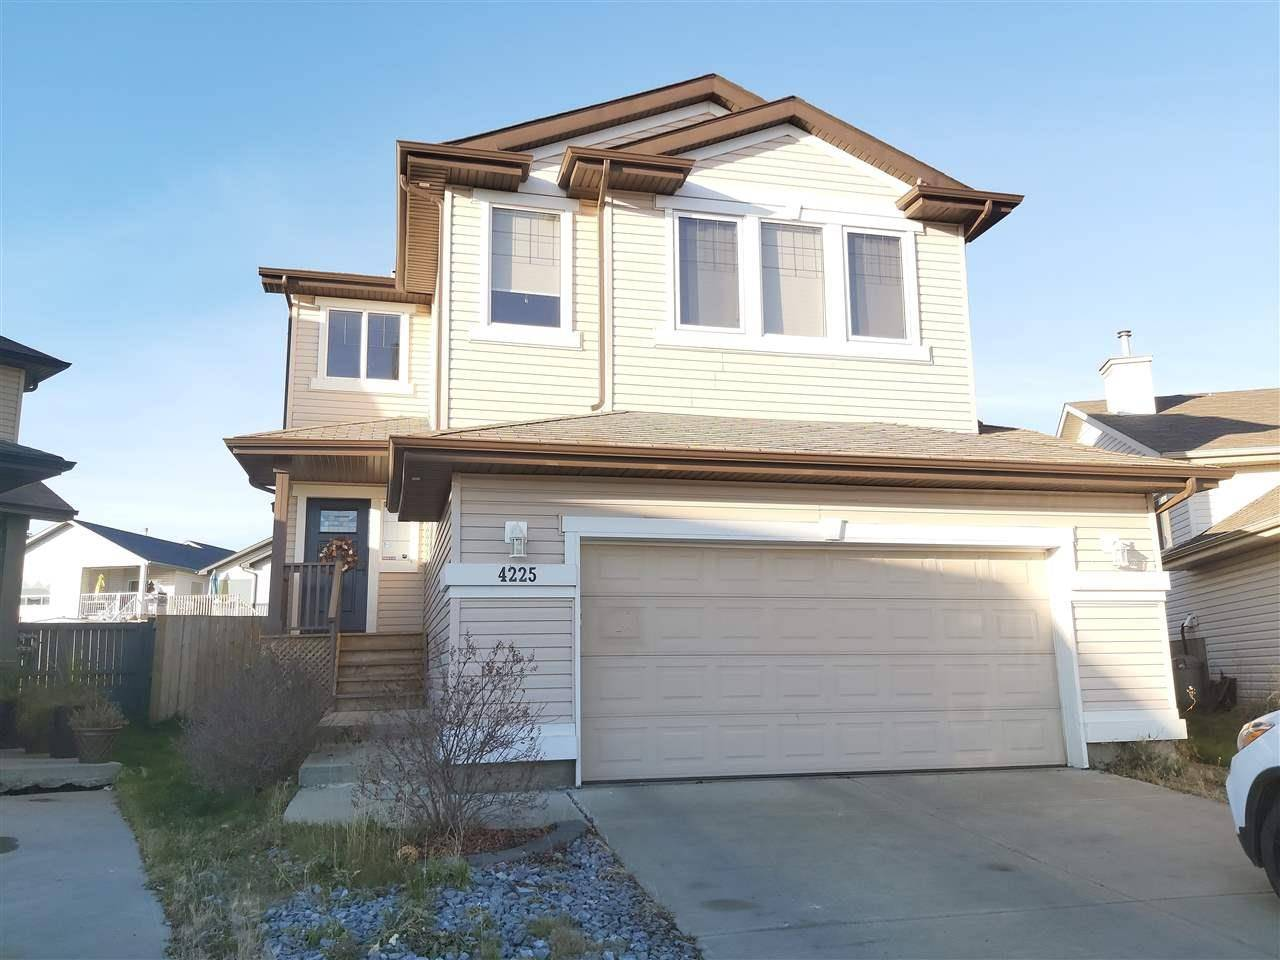 House for sale at 4225 156a Ave Nw Edmonton Alberta - MLS: E4178965